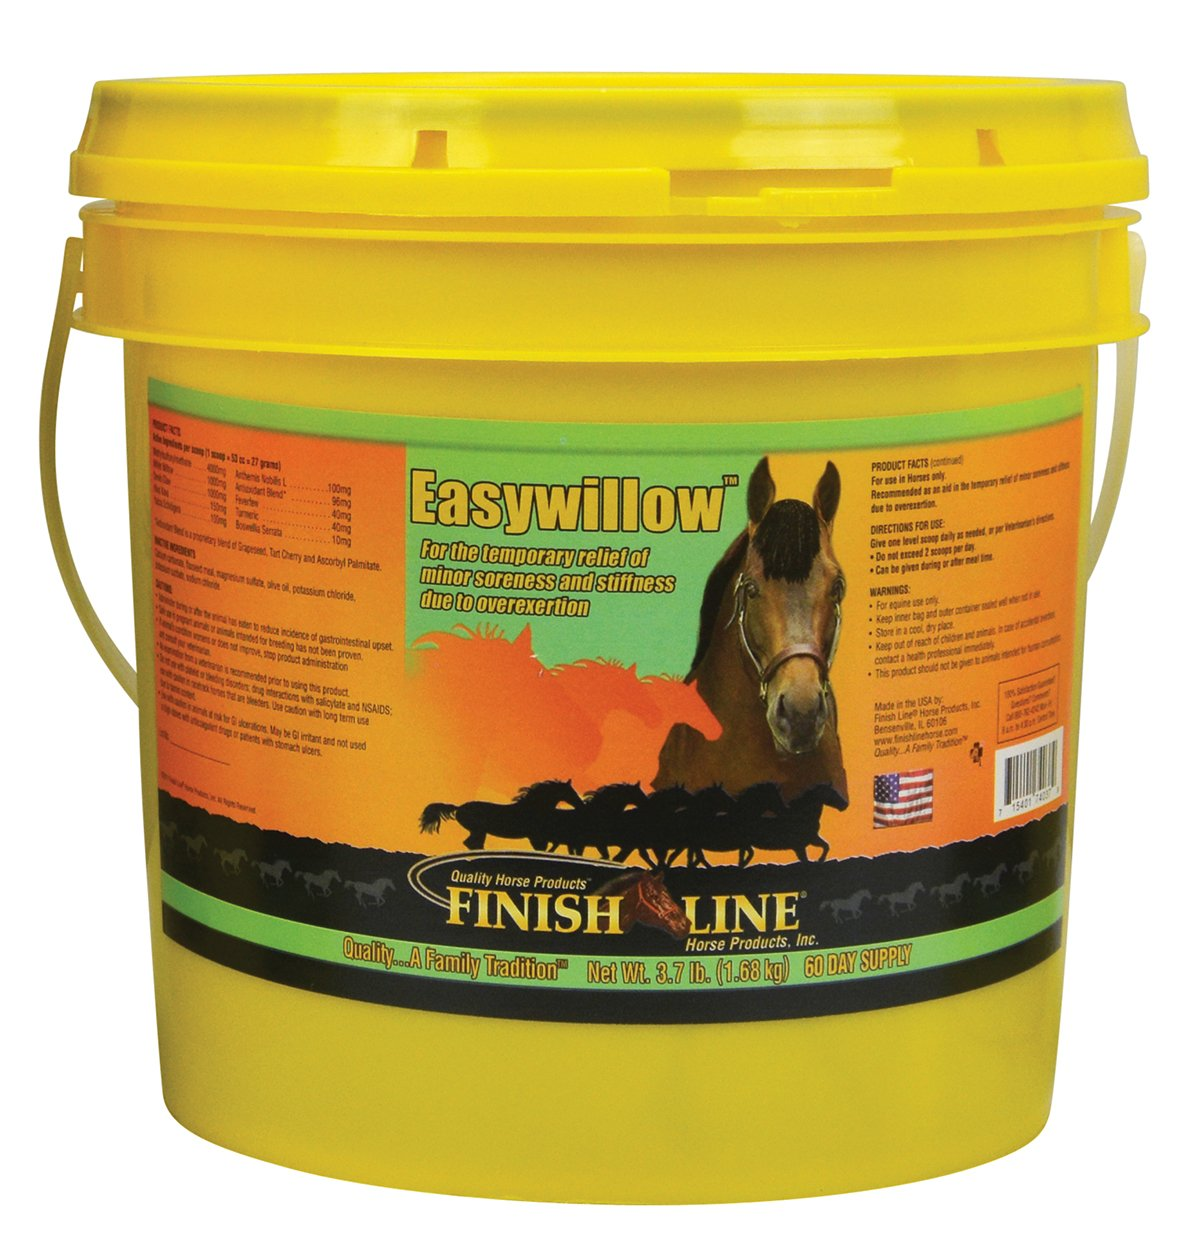 Finish Line Easywillow Pain Management 3.7 lbs by Finish Line